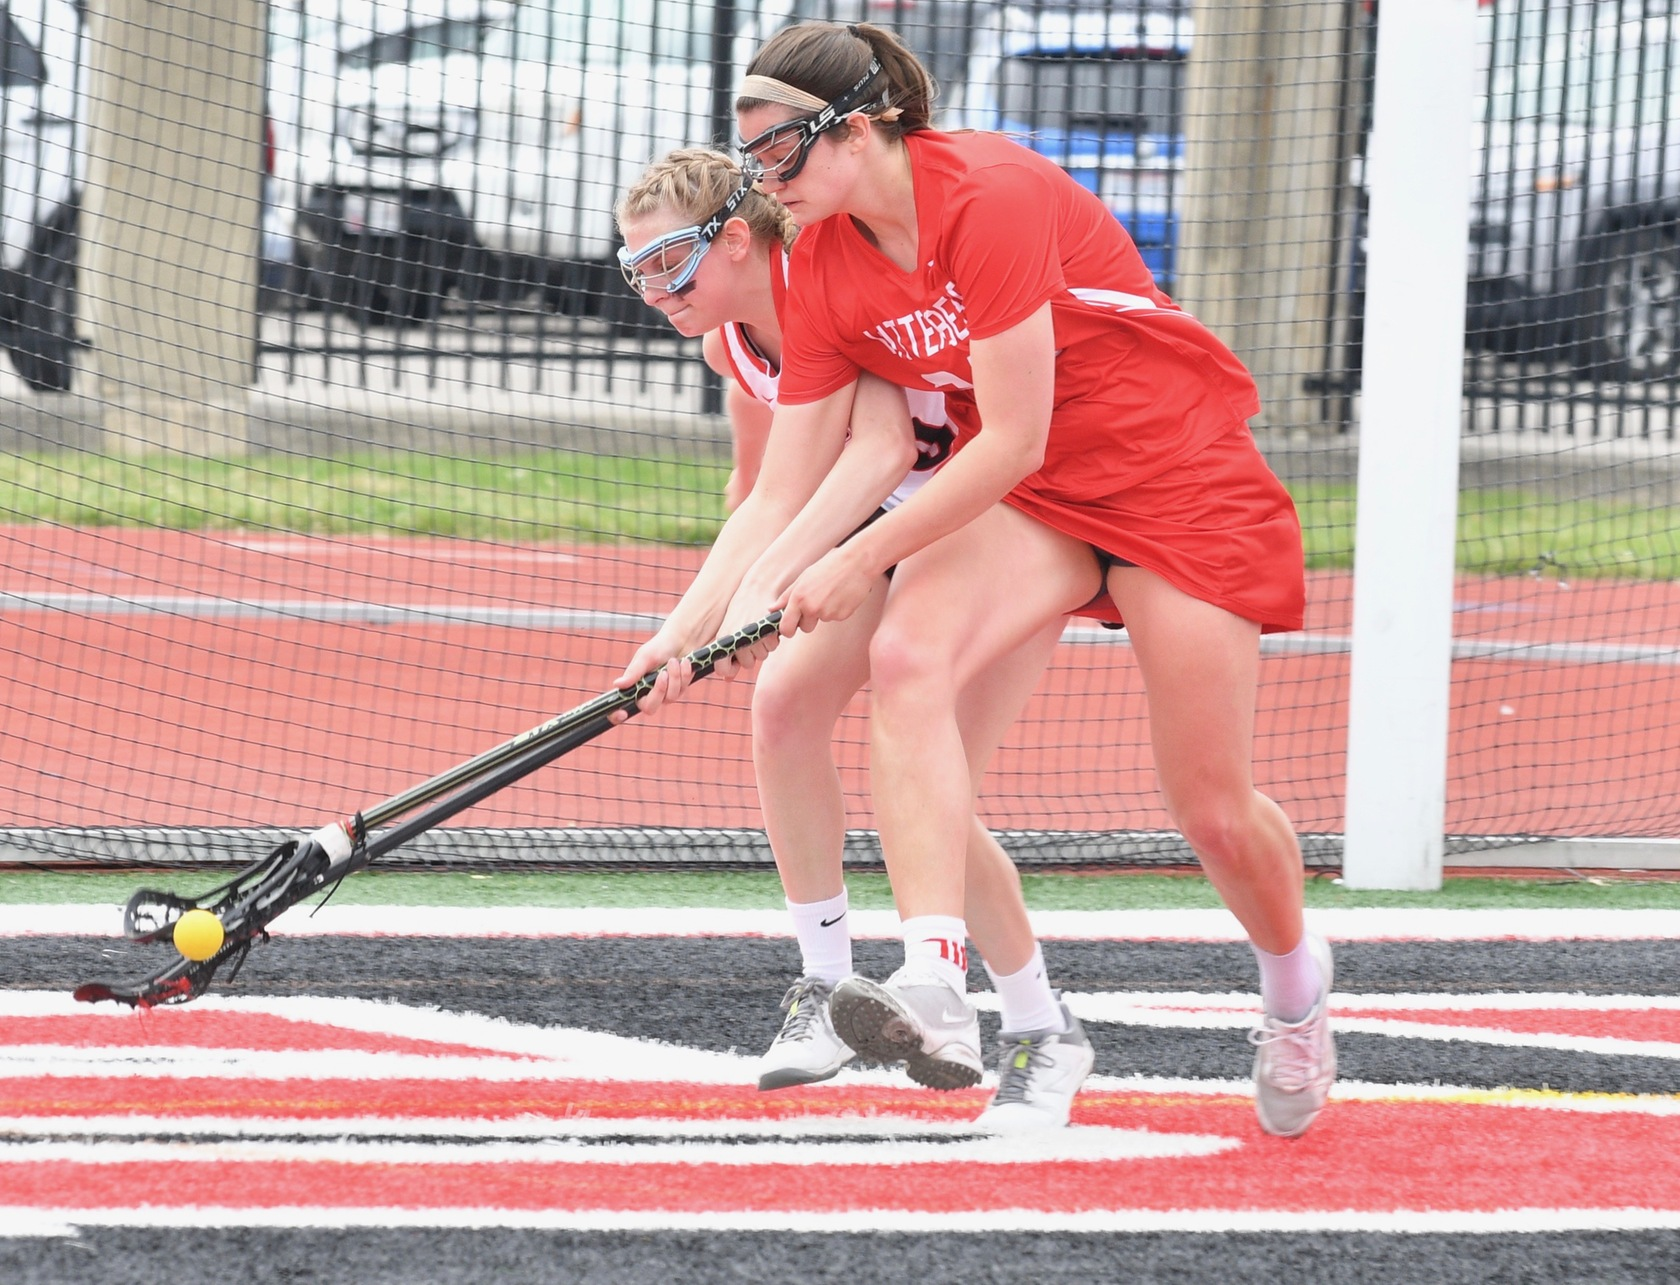 Senior Emily Wadds posted her fifth-straight hat trick performance in the Tigers' 25-6 loss at Denison